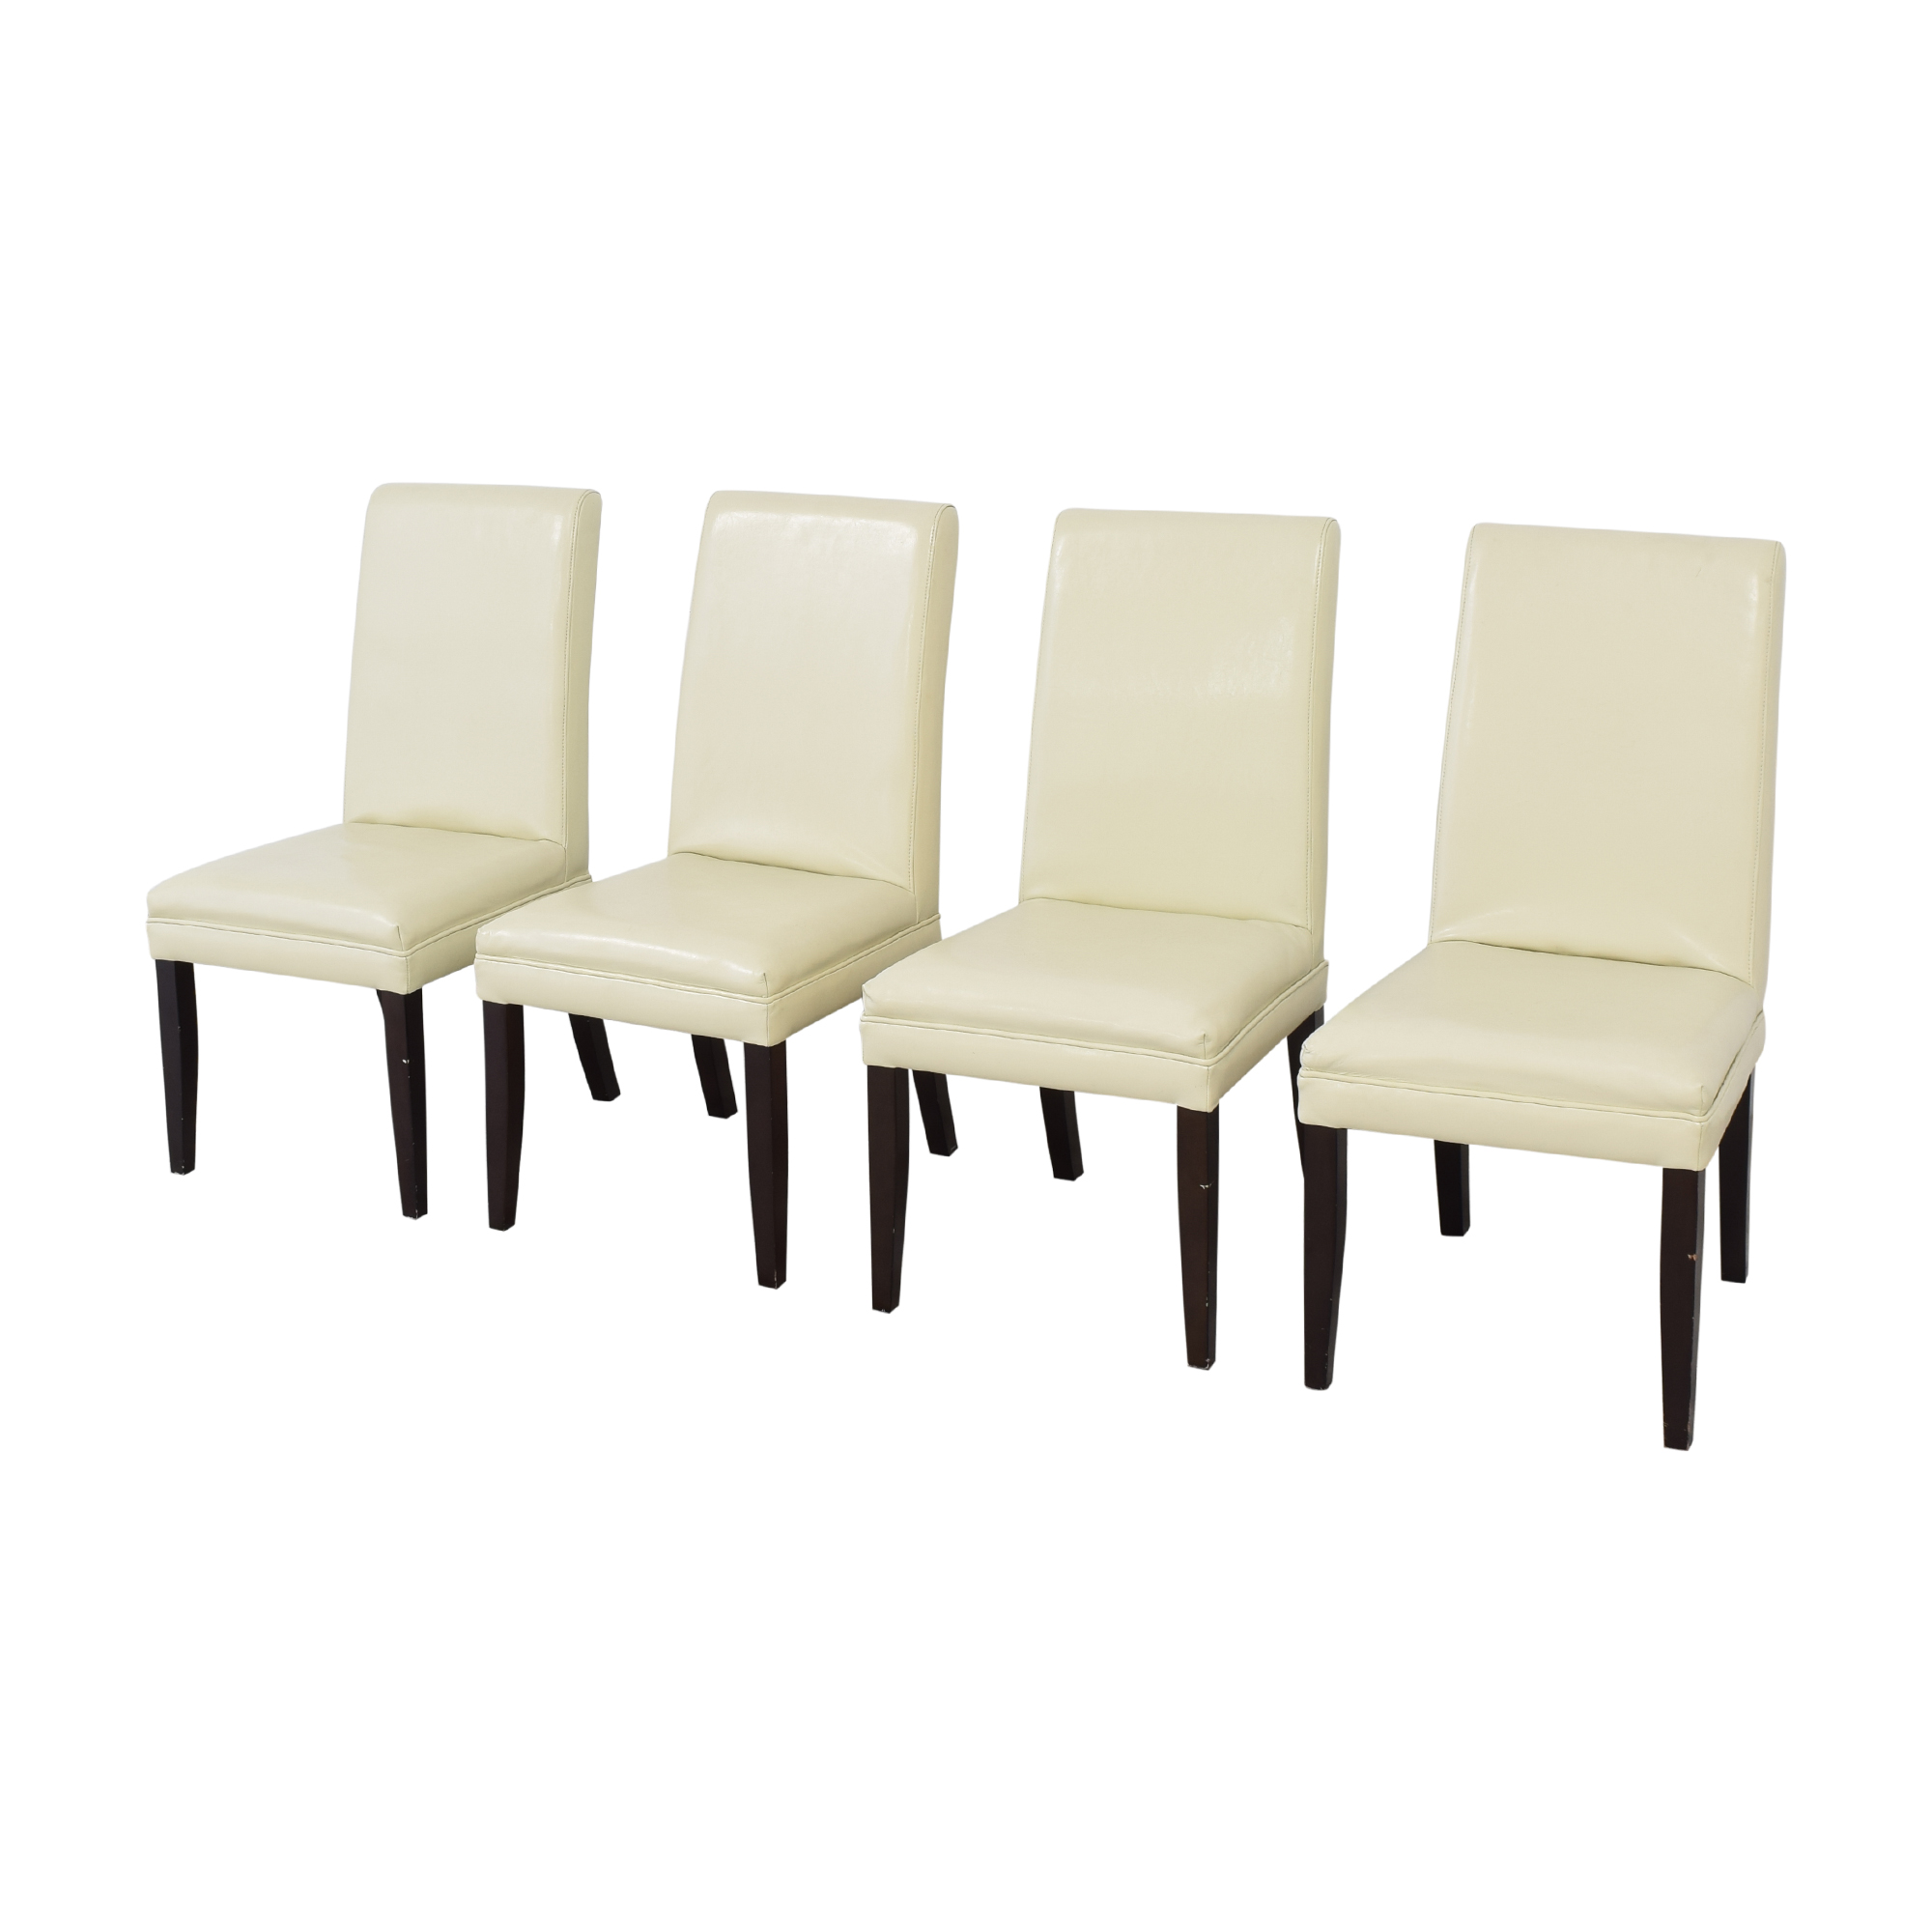 shop Macy's Dining Chairs Macy's Chairs